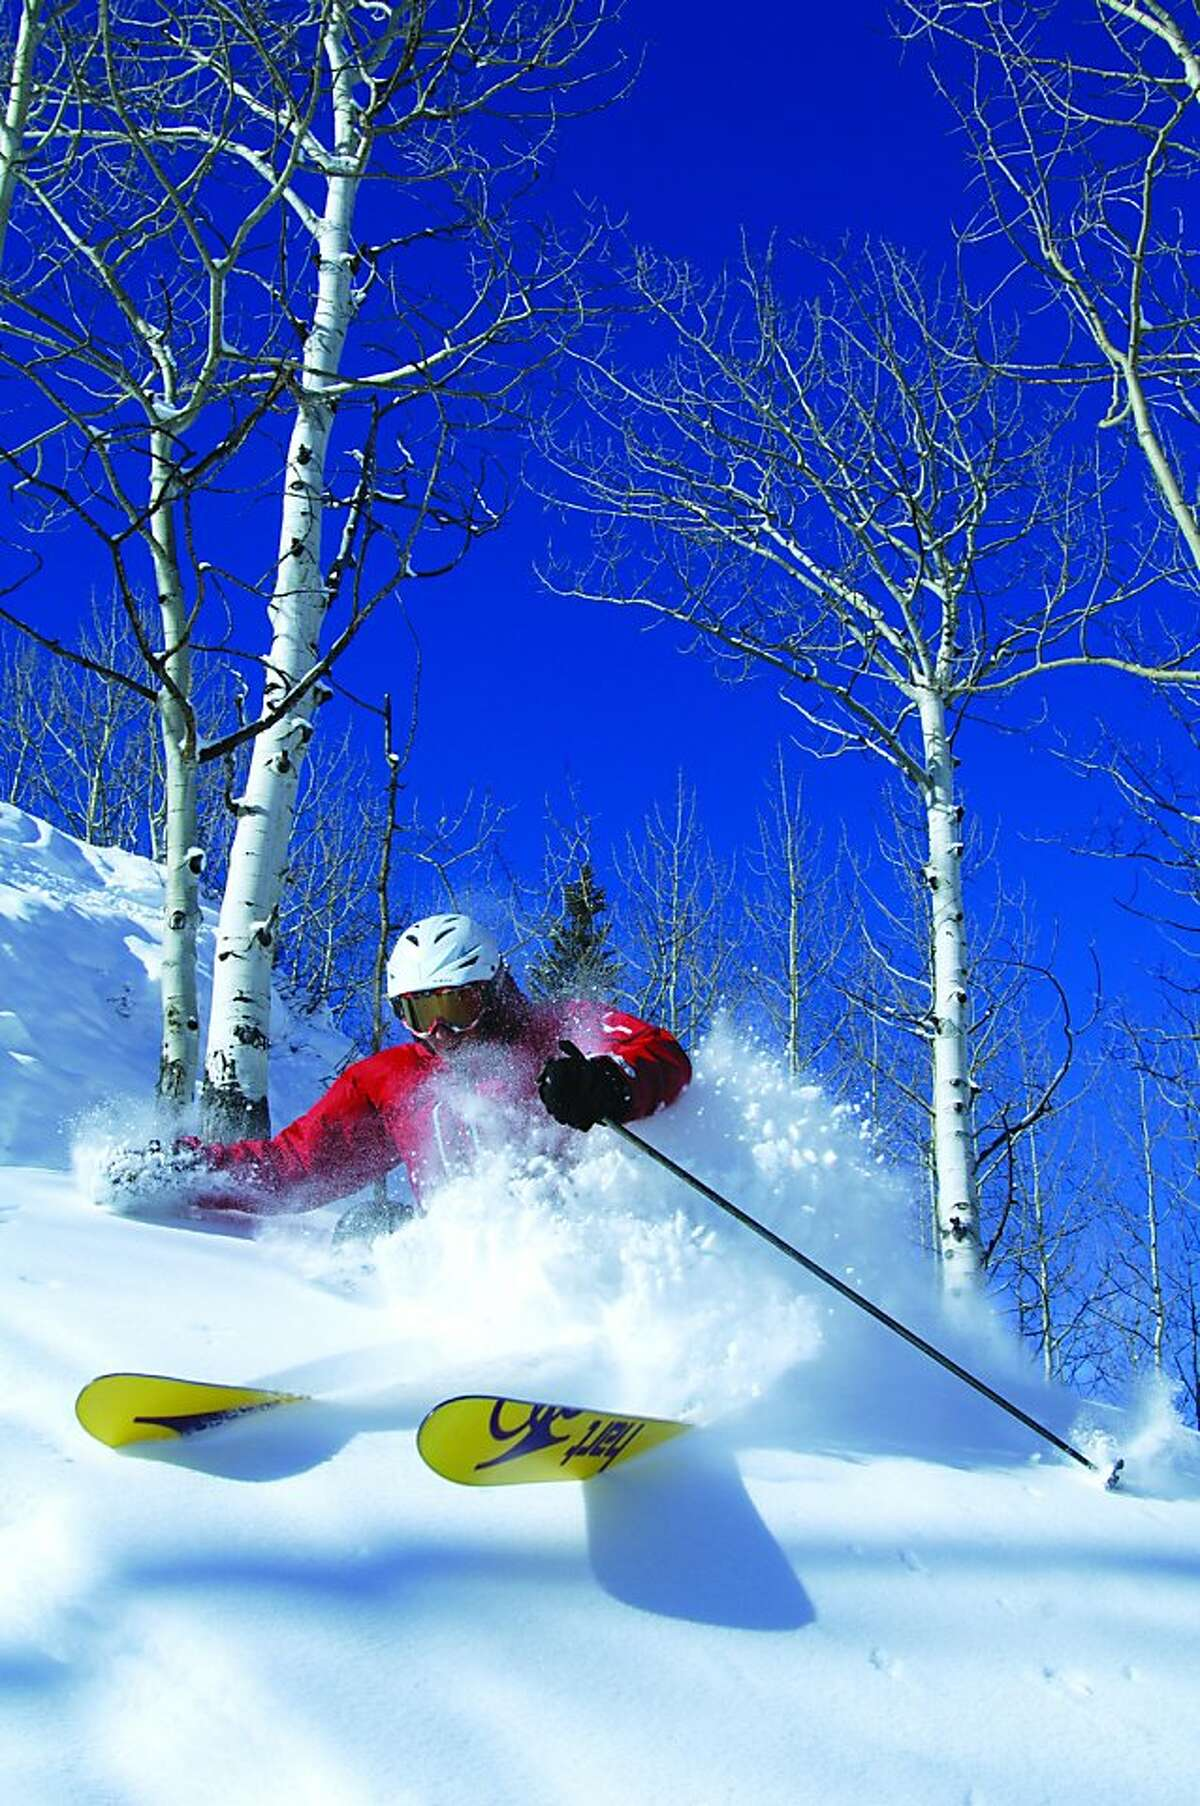 Powder skiing at Crested Butte Mountain Resort.